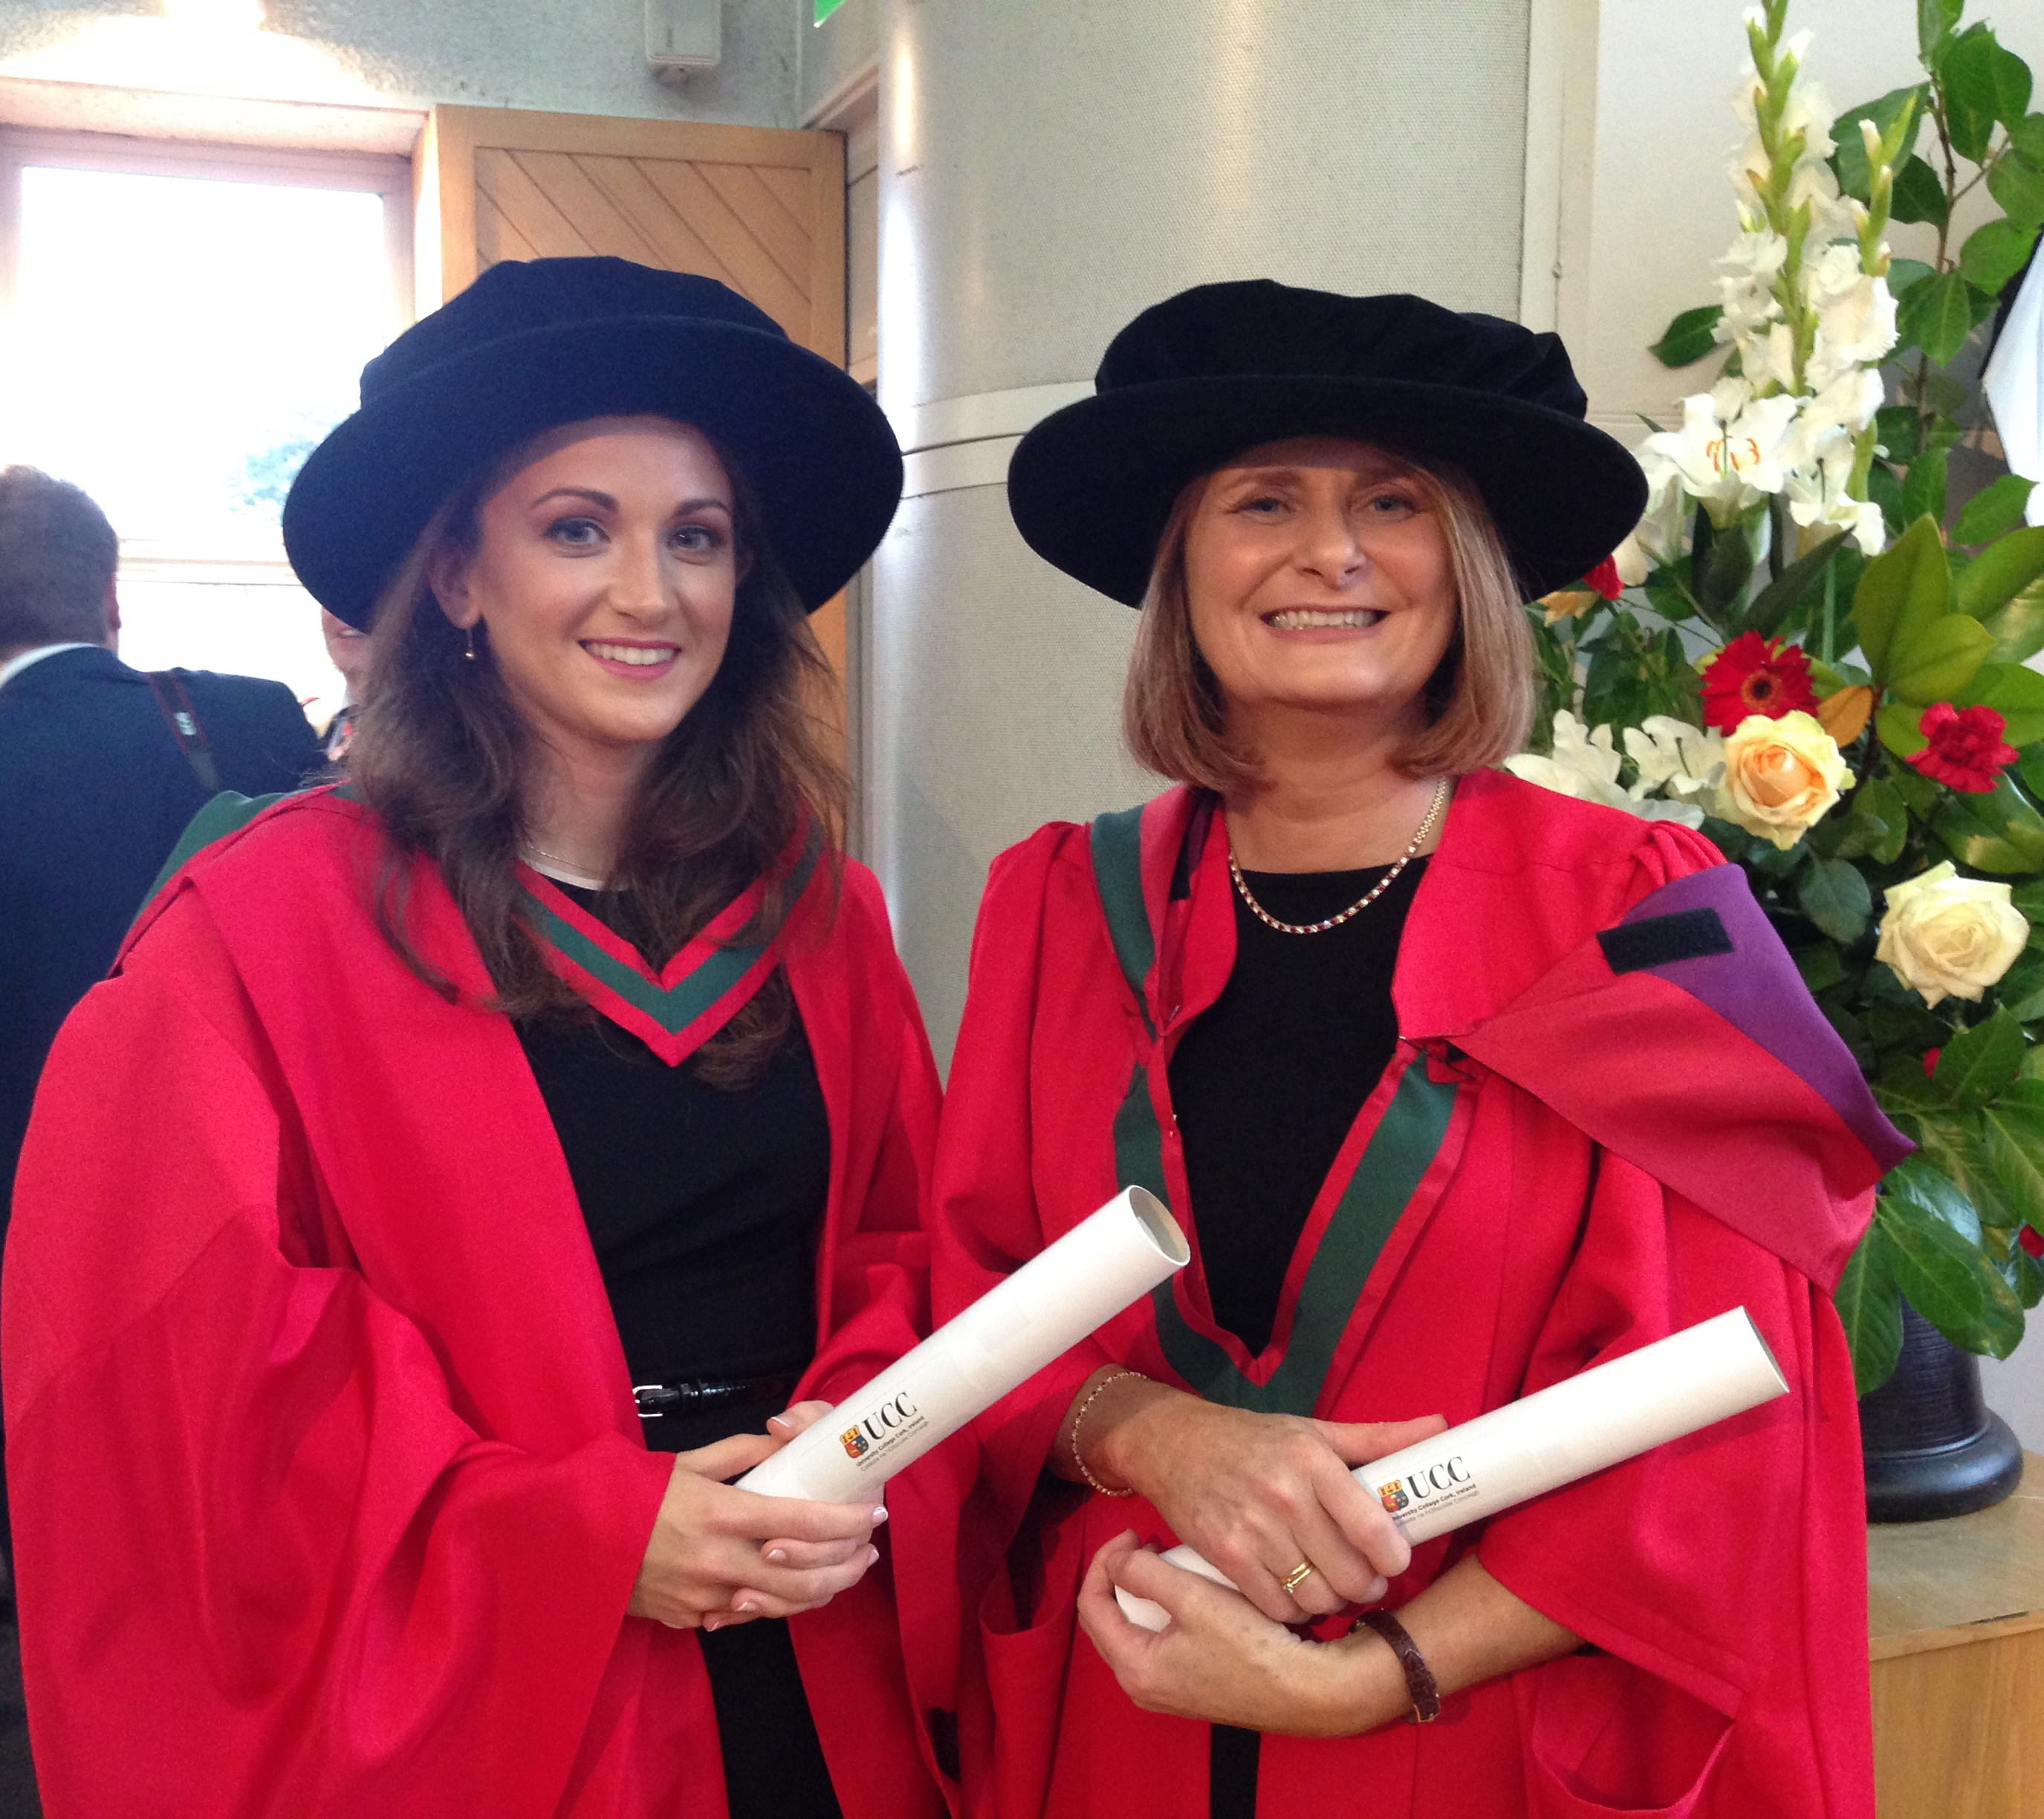 Congratulations to Dr McMorrow & Dr Harding